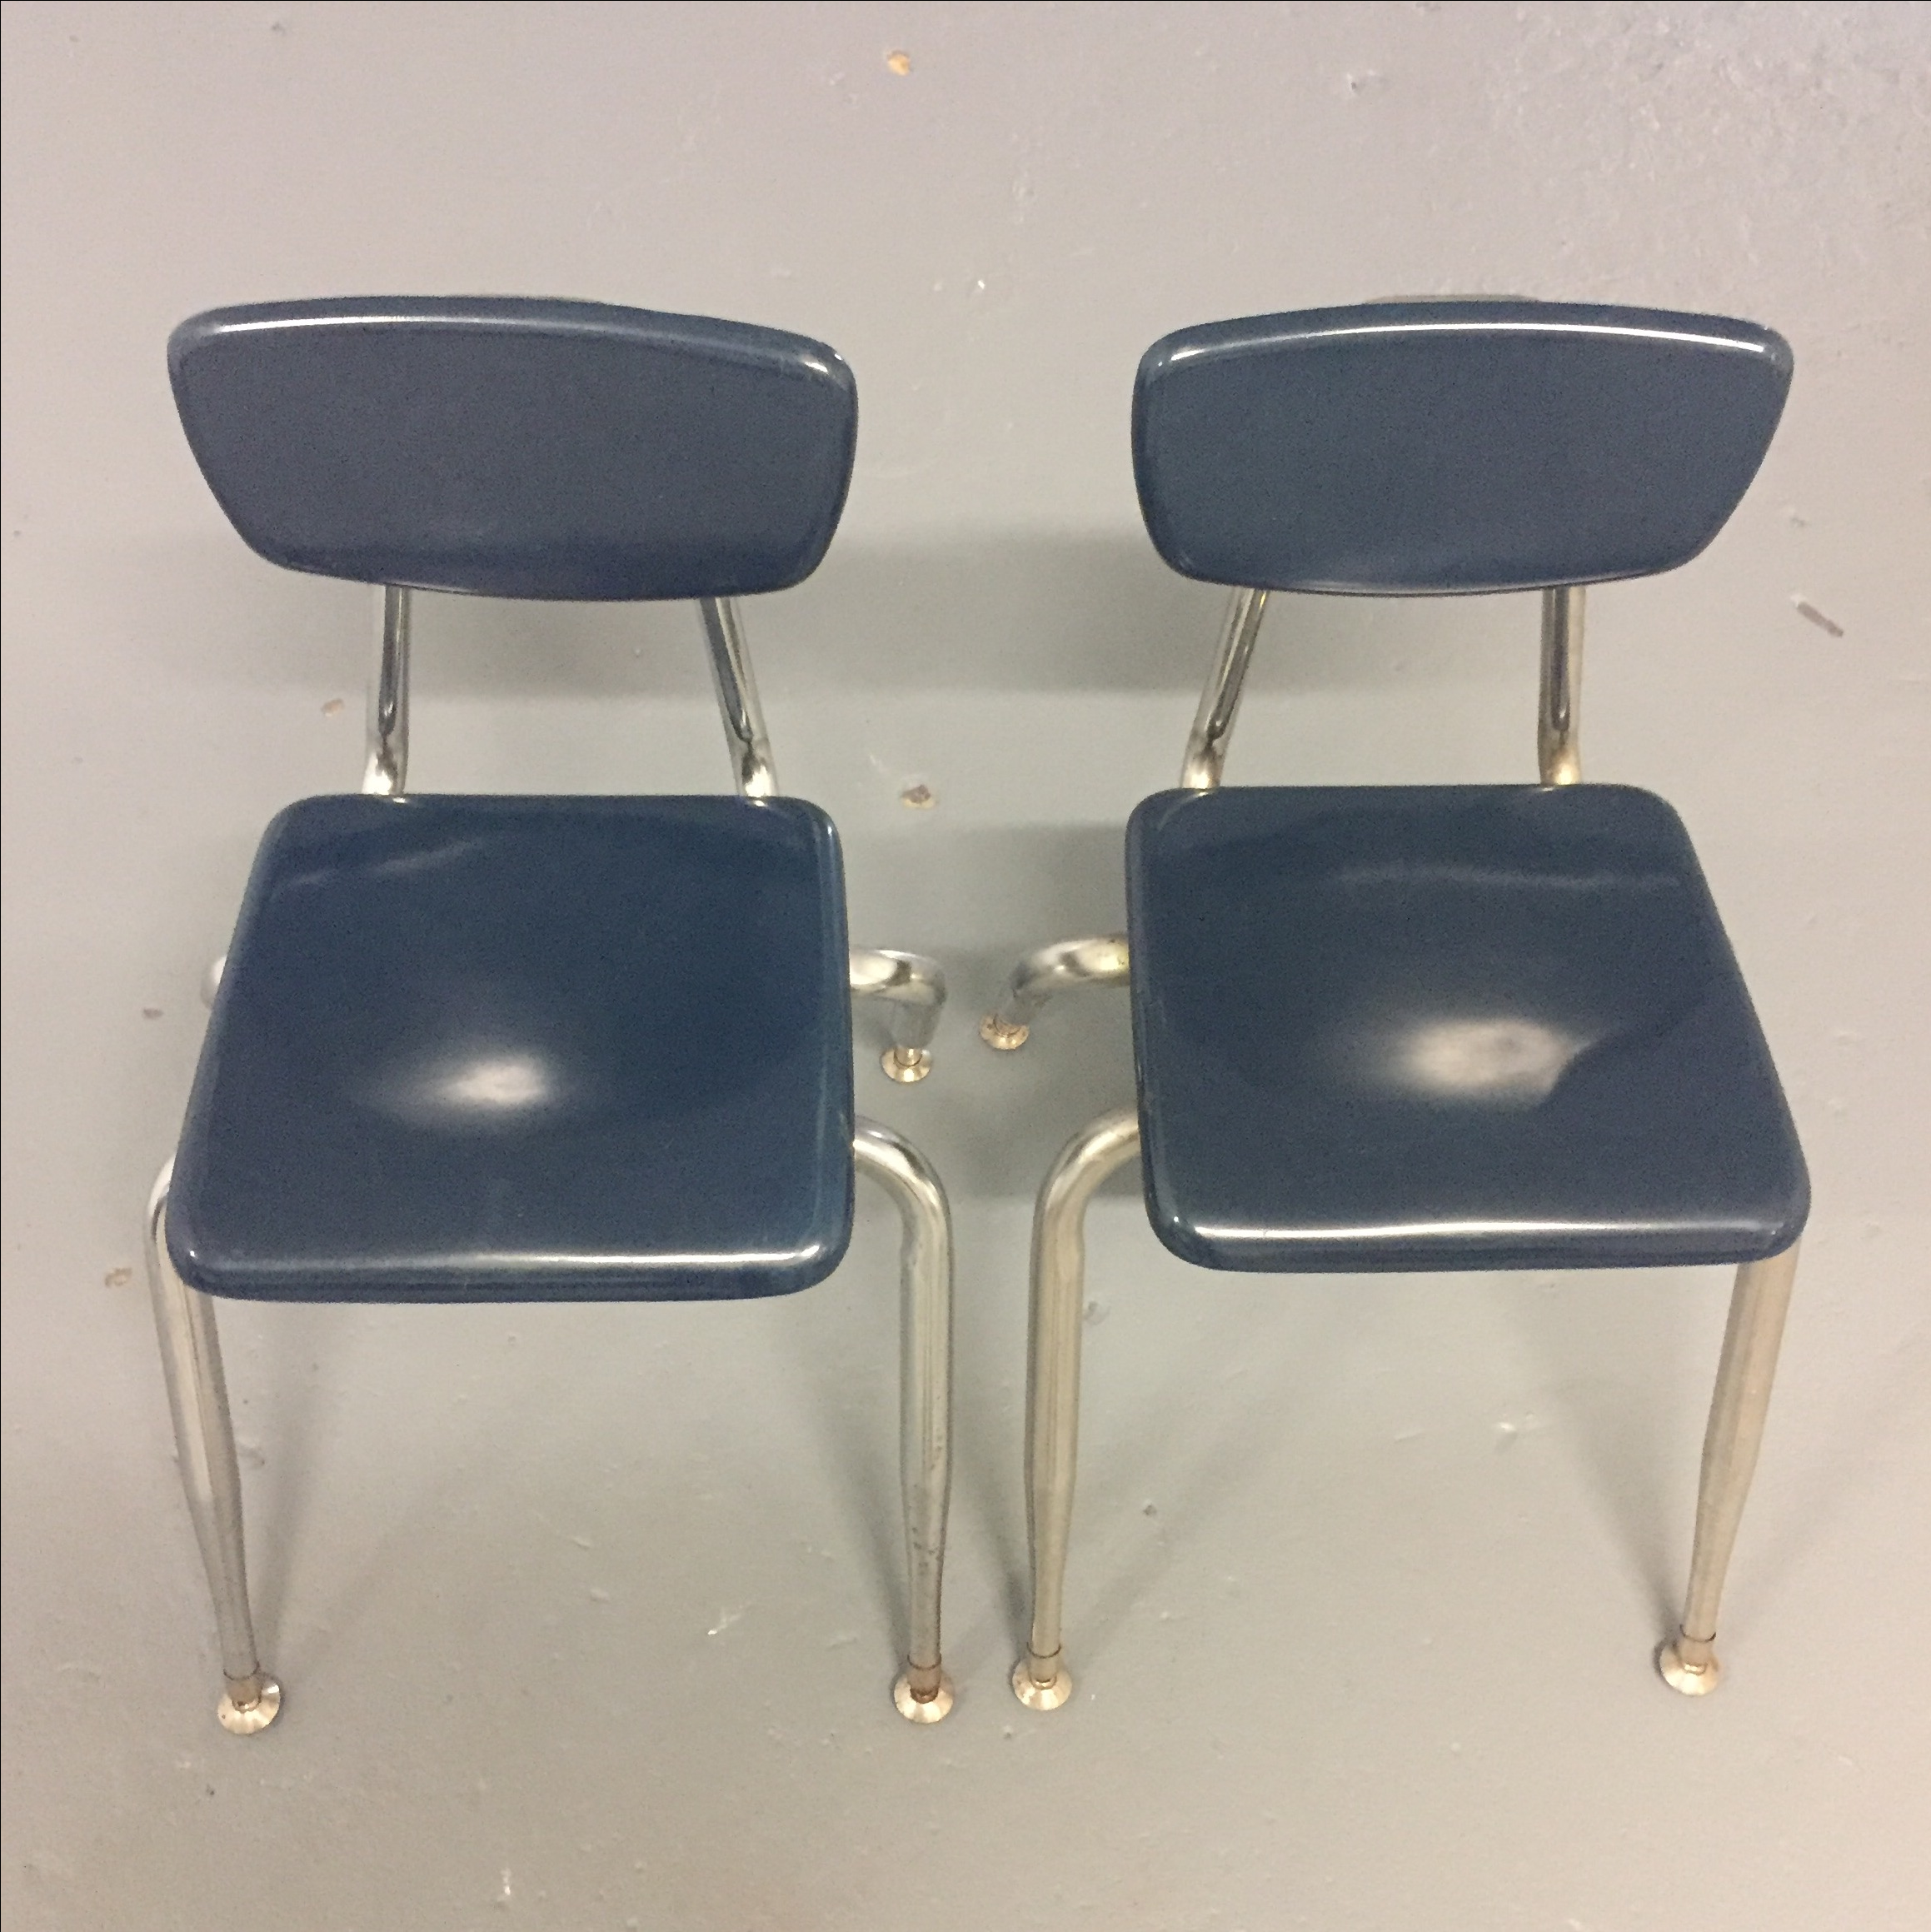 Pair Of Vintage Plastic And Chrome Childrenu0027s Chair. Very Stable And Used  In Kindergarten Previously